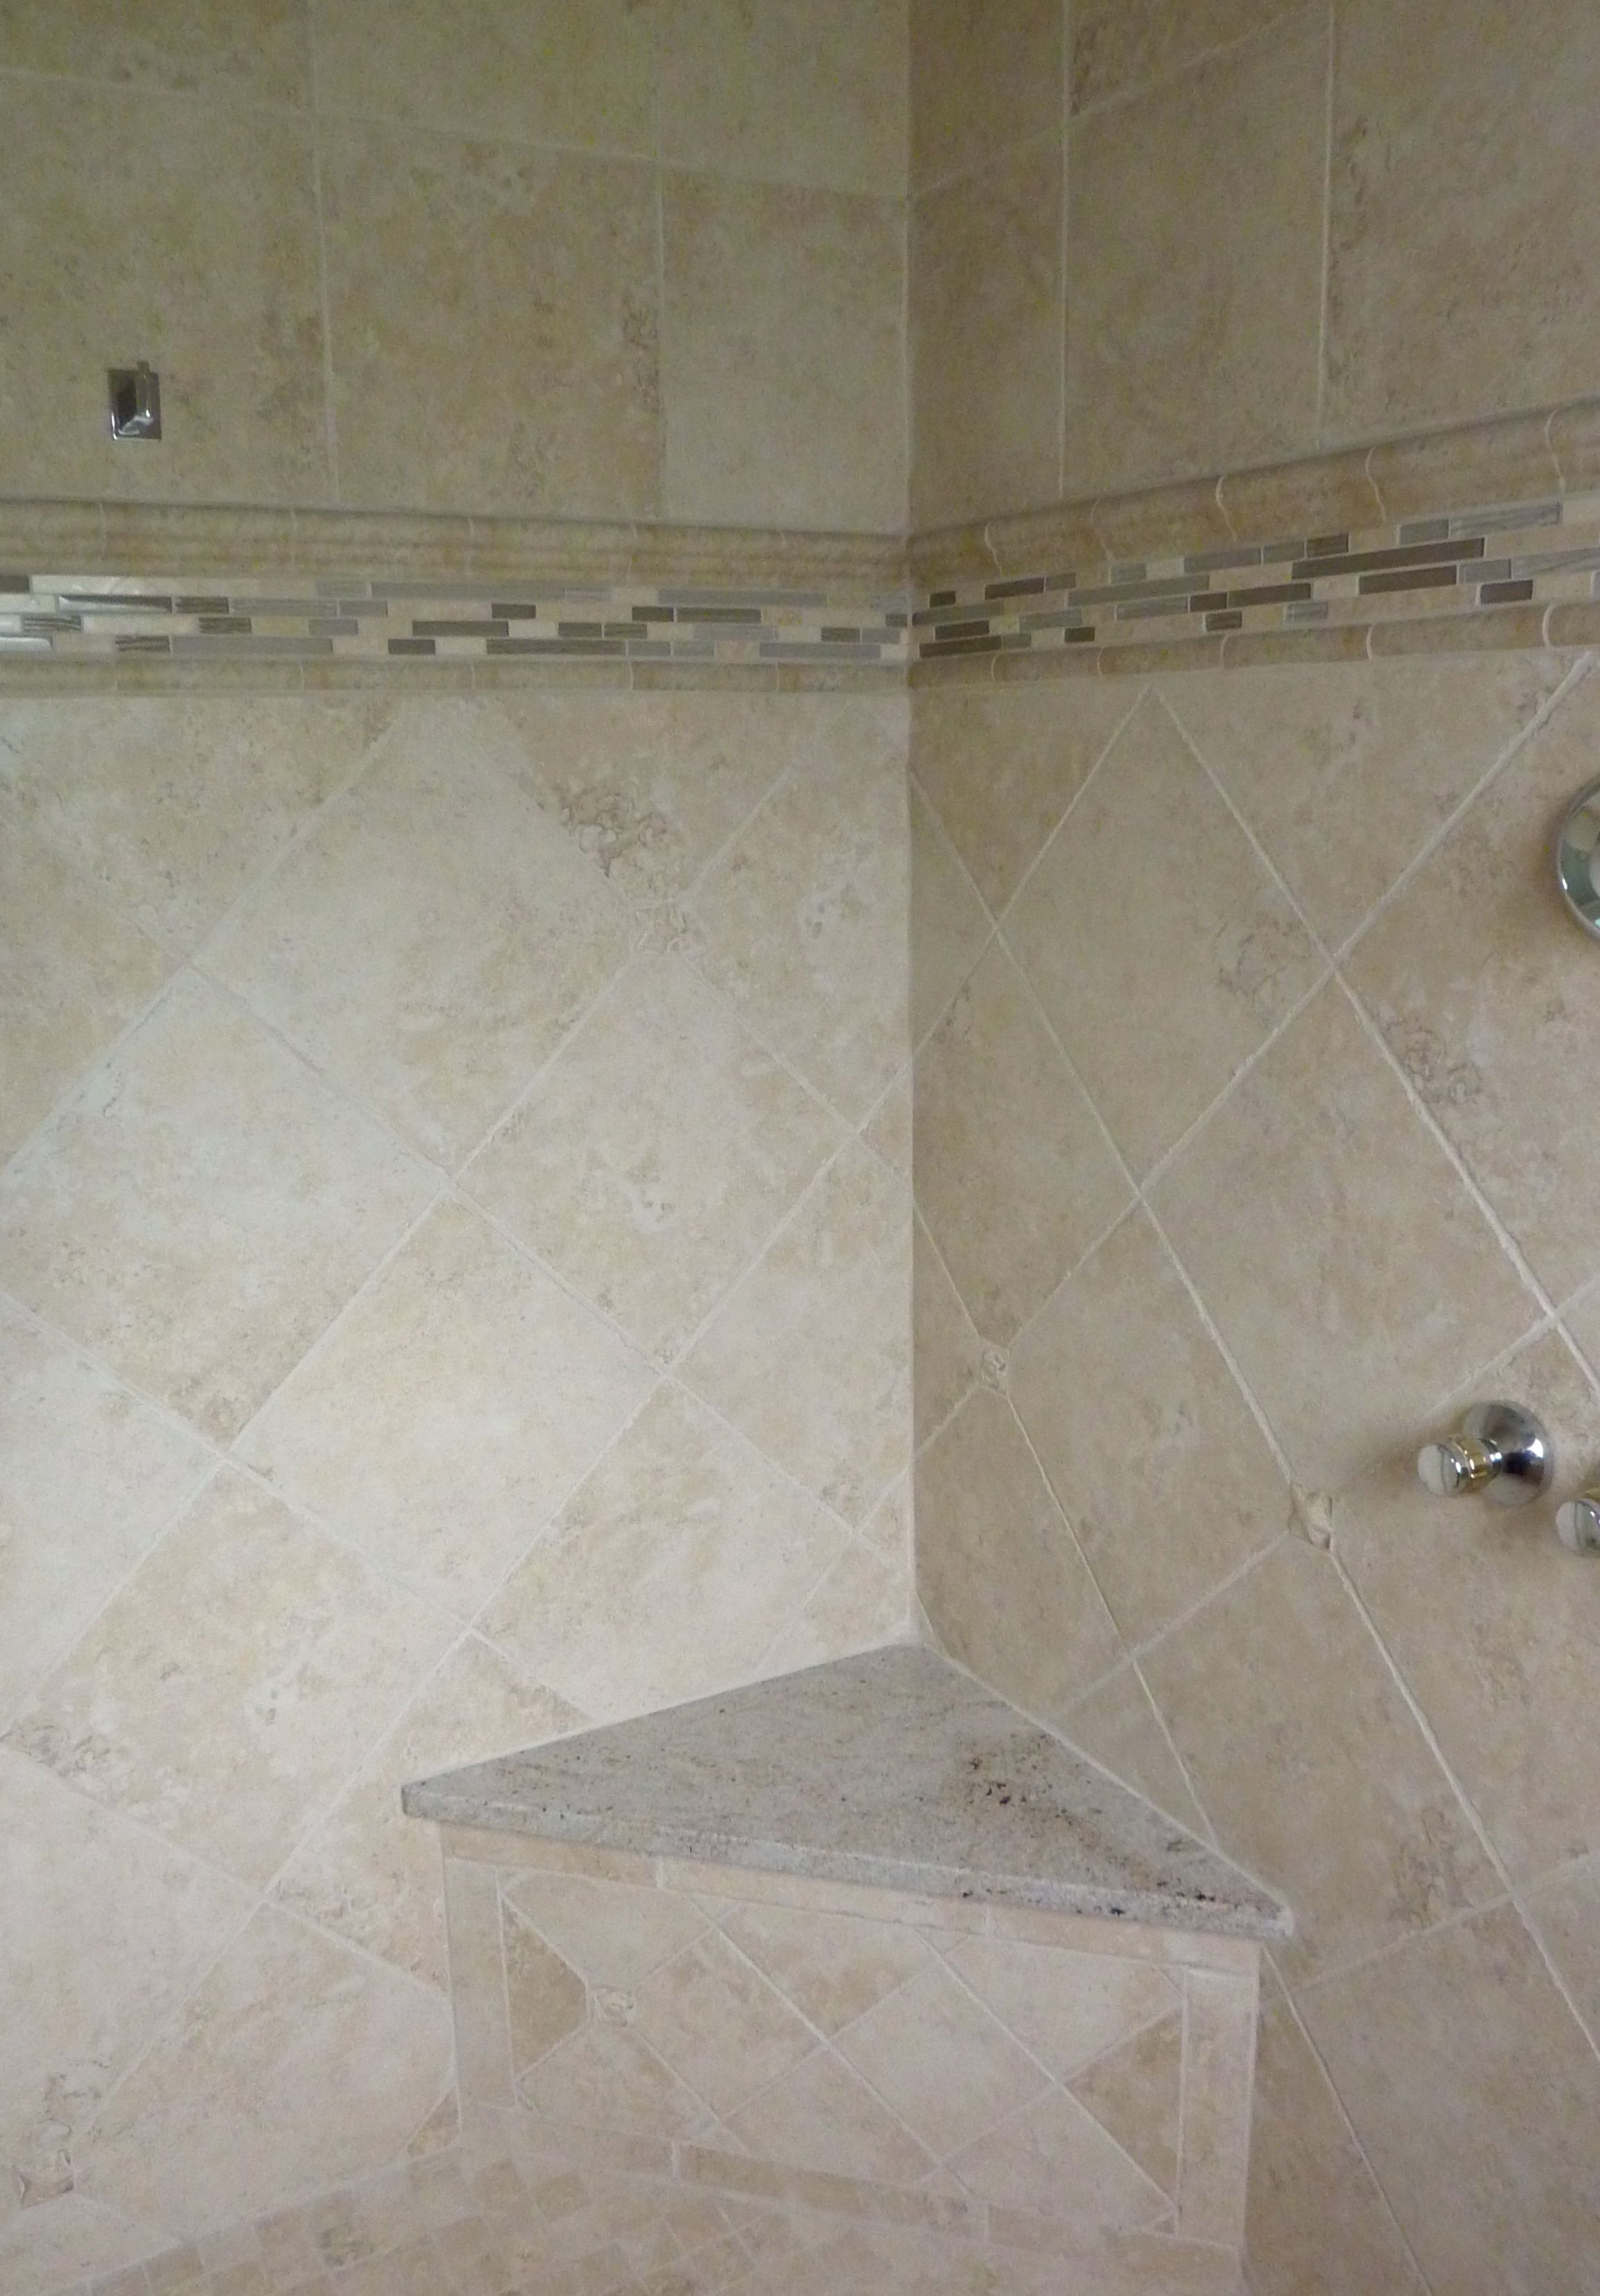 Mosaic liners art pattern mirrorred bathroom wall discount tiles - Tile Pattern Option This Is A Ceramic Tile Set On A Diagonal Below The Liner